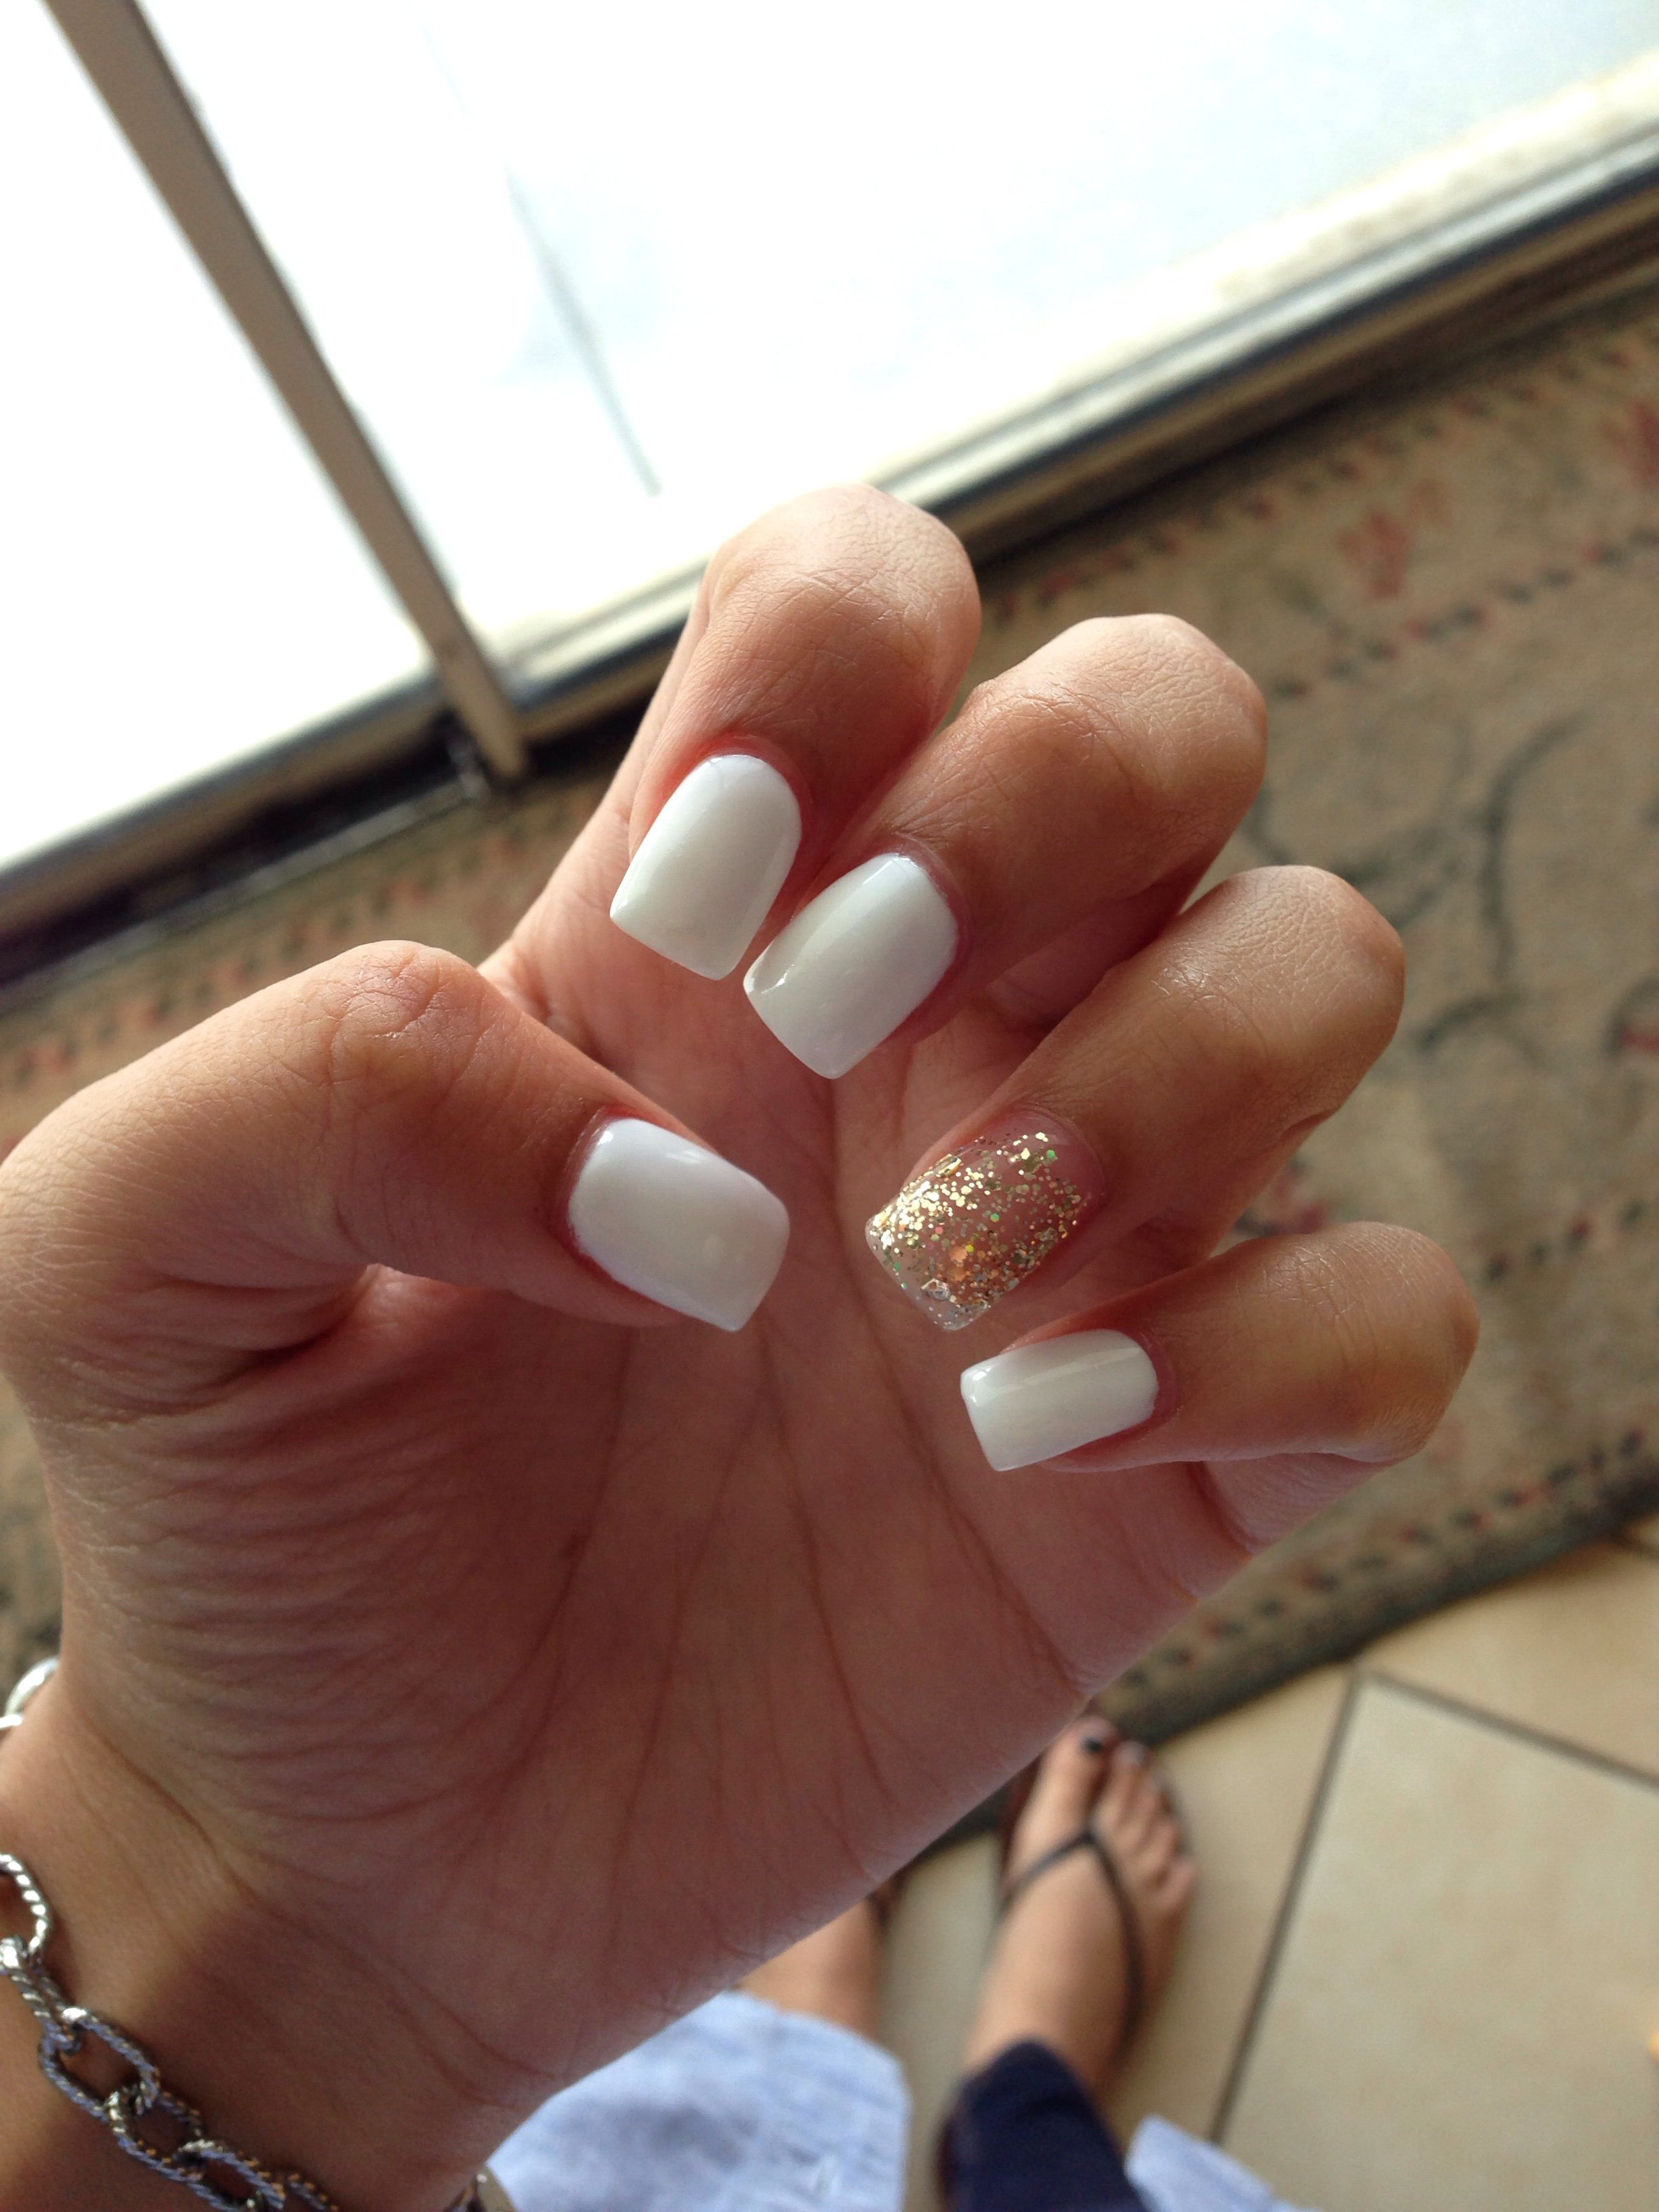 White Nails With Gold Glitter Accent Nail White Gold Acrylics White Acrylic Nails With Glitter Short Square Acrylic Nails Pretty Acrylic Nails